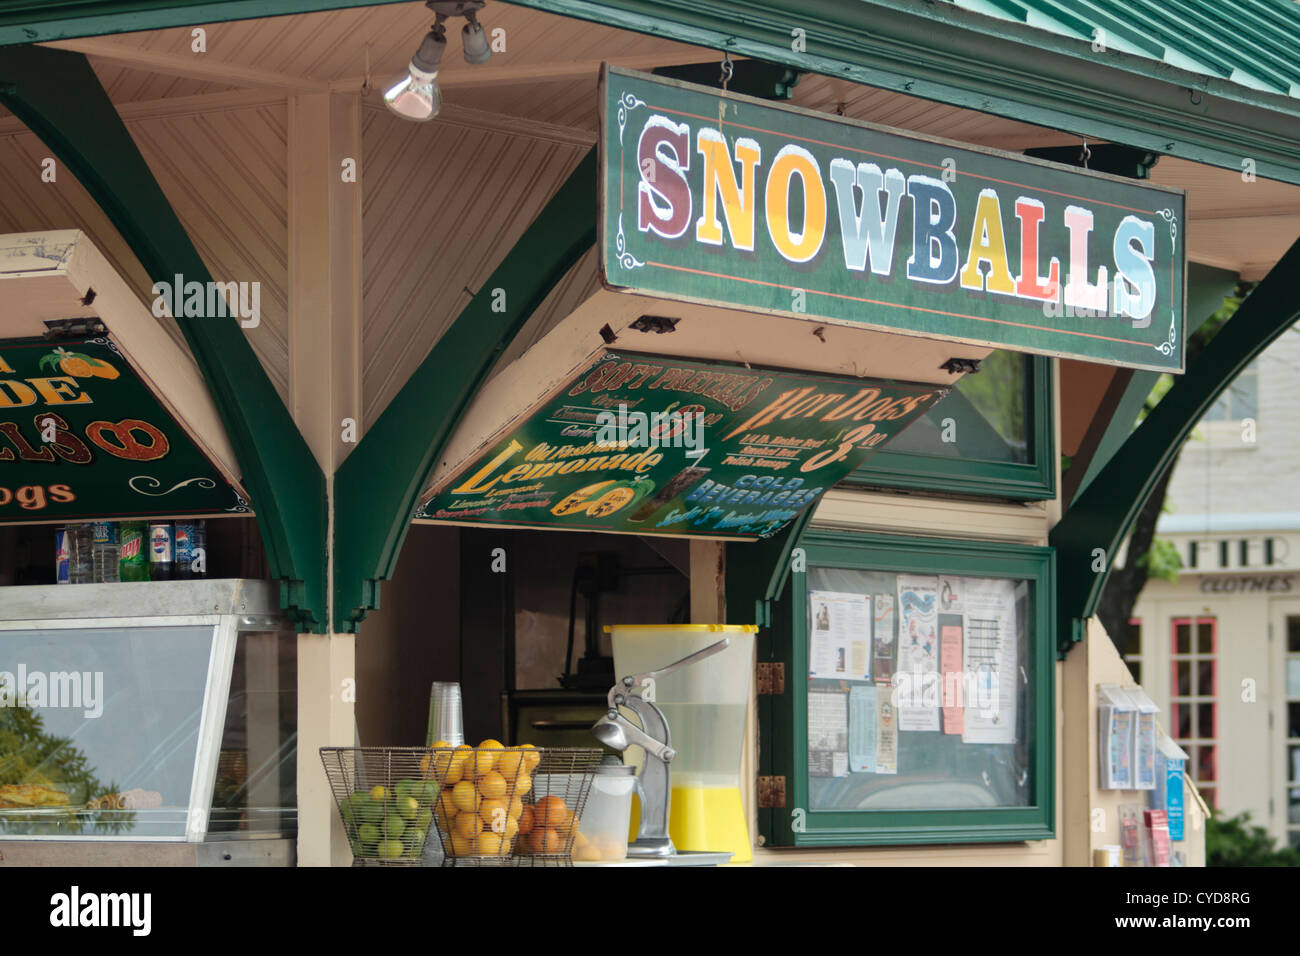 outdoor concession stand selling food drinks and snacks Baltimore, Maryland - Stock Image